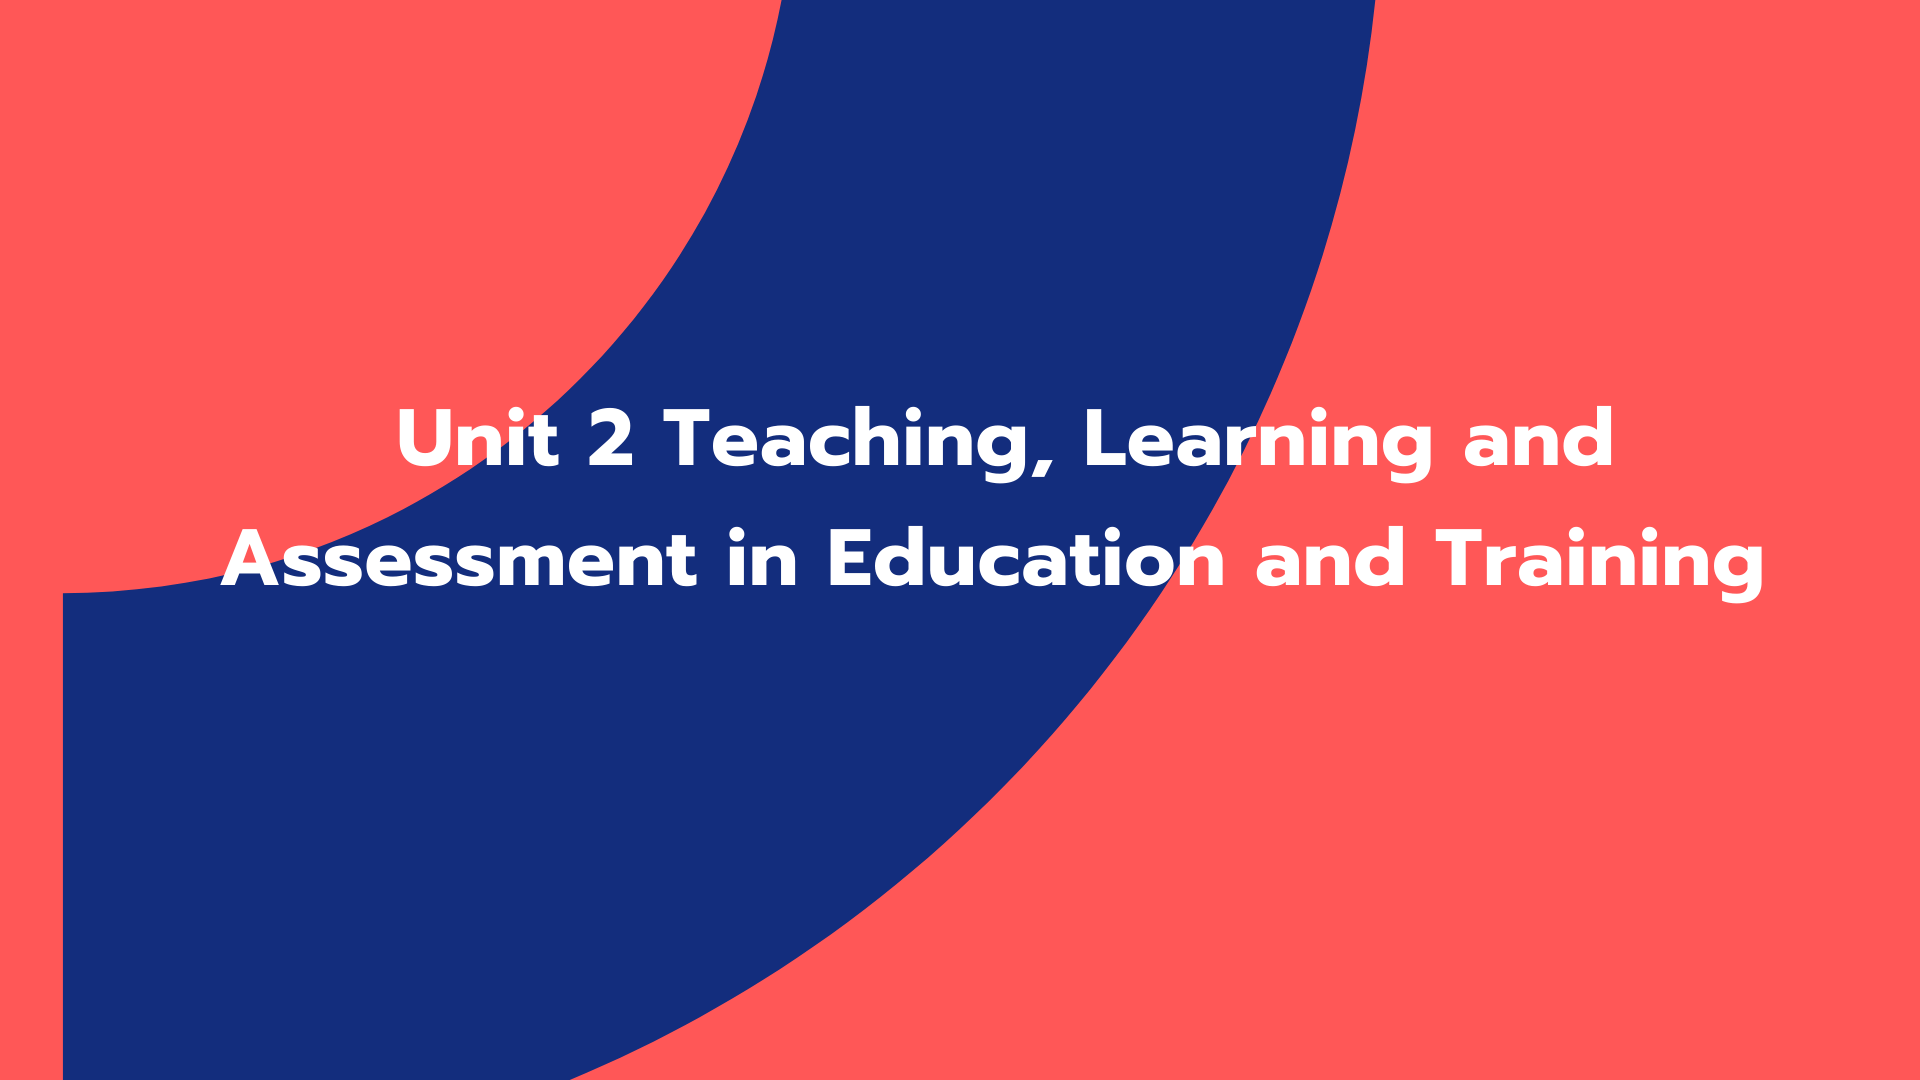 Unit 2 Teaching, Learning and Assessment in Education and Training